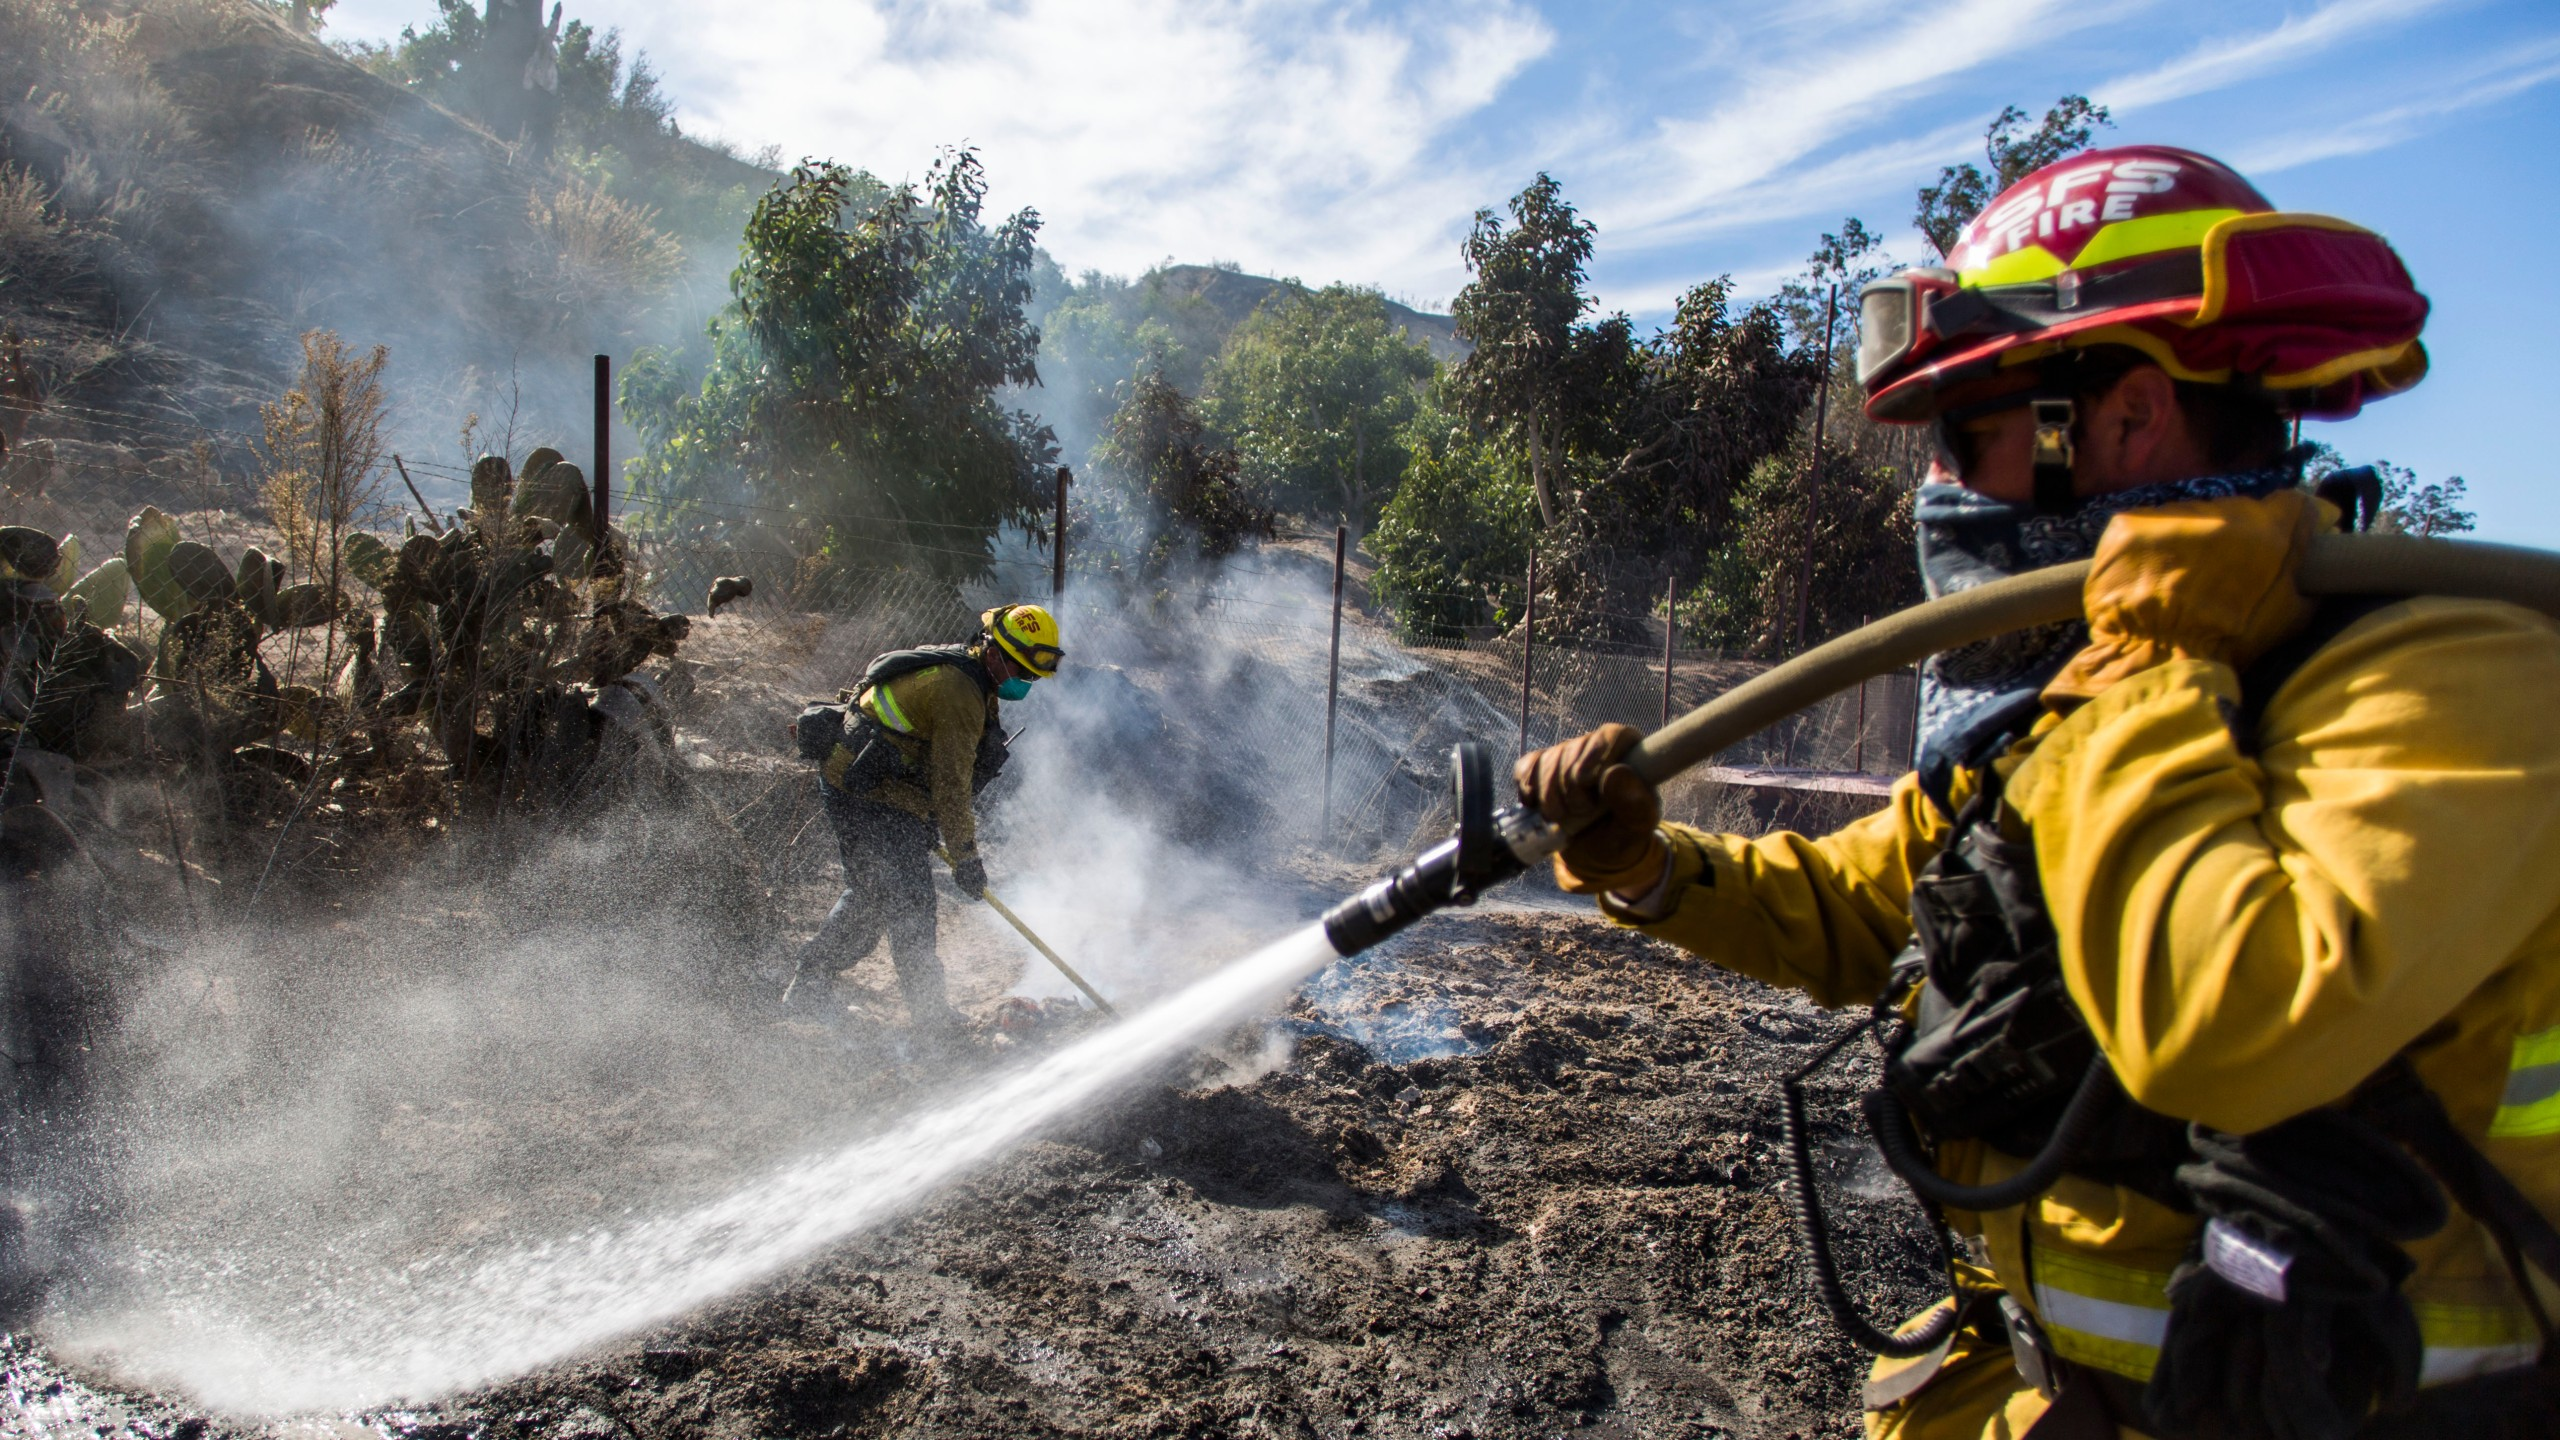 Firefighters from Santa Fe Springs battle to control hotspots during the Maria Fire in Santa Paula area on Nov. 2, 2019. (Credit: Apu Gomes / AFP / Getty Images)